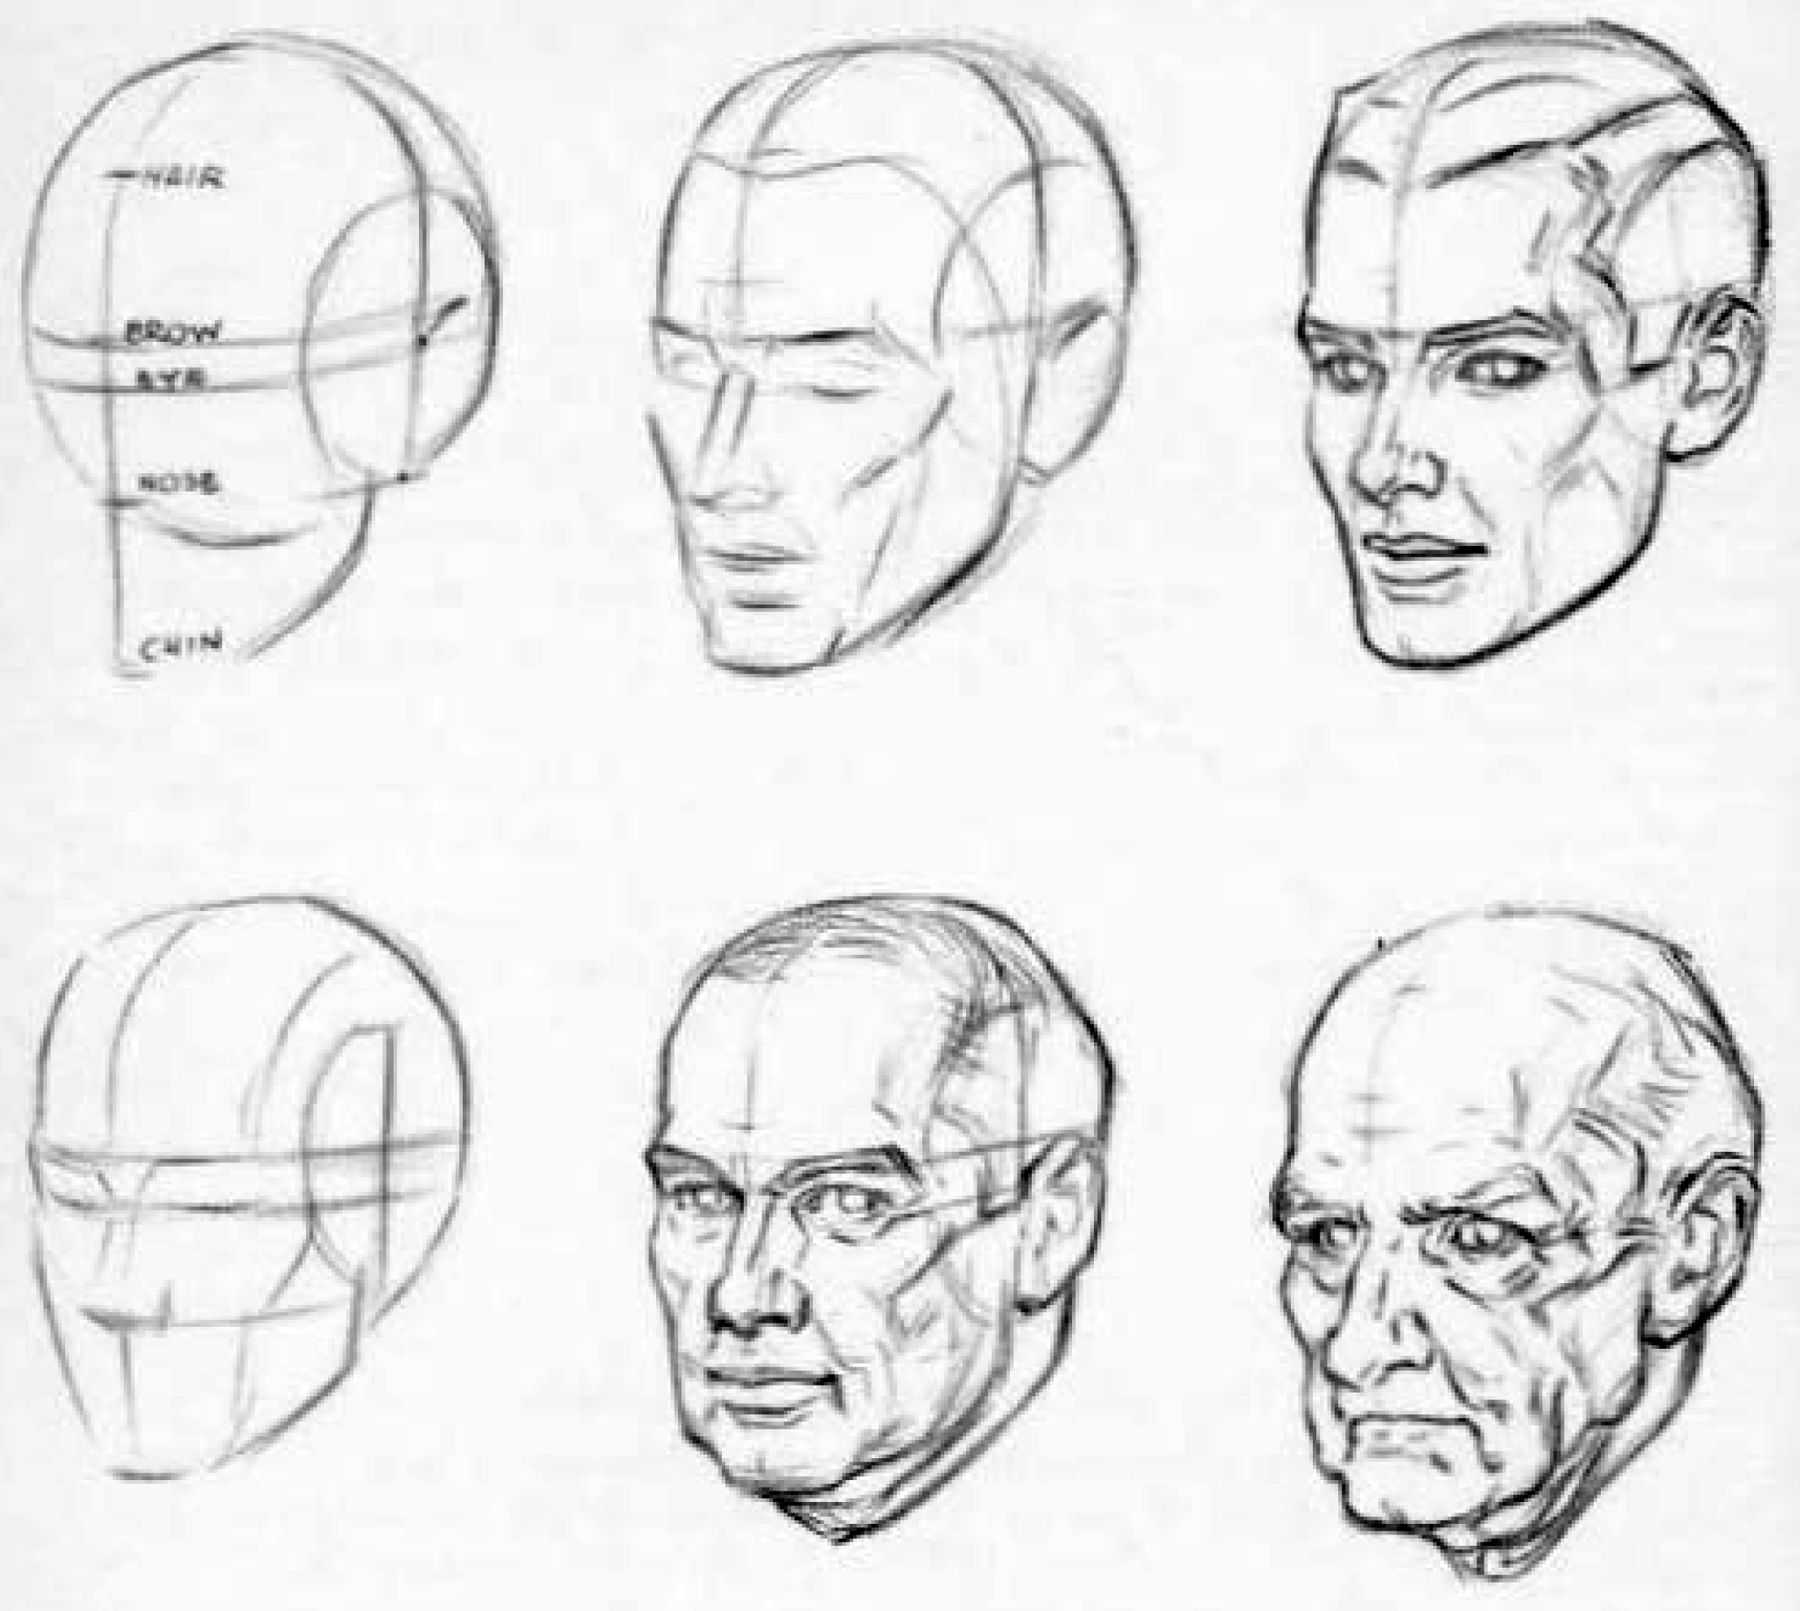 How to draw an aging elderly or old man